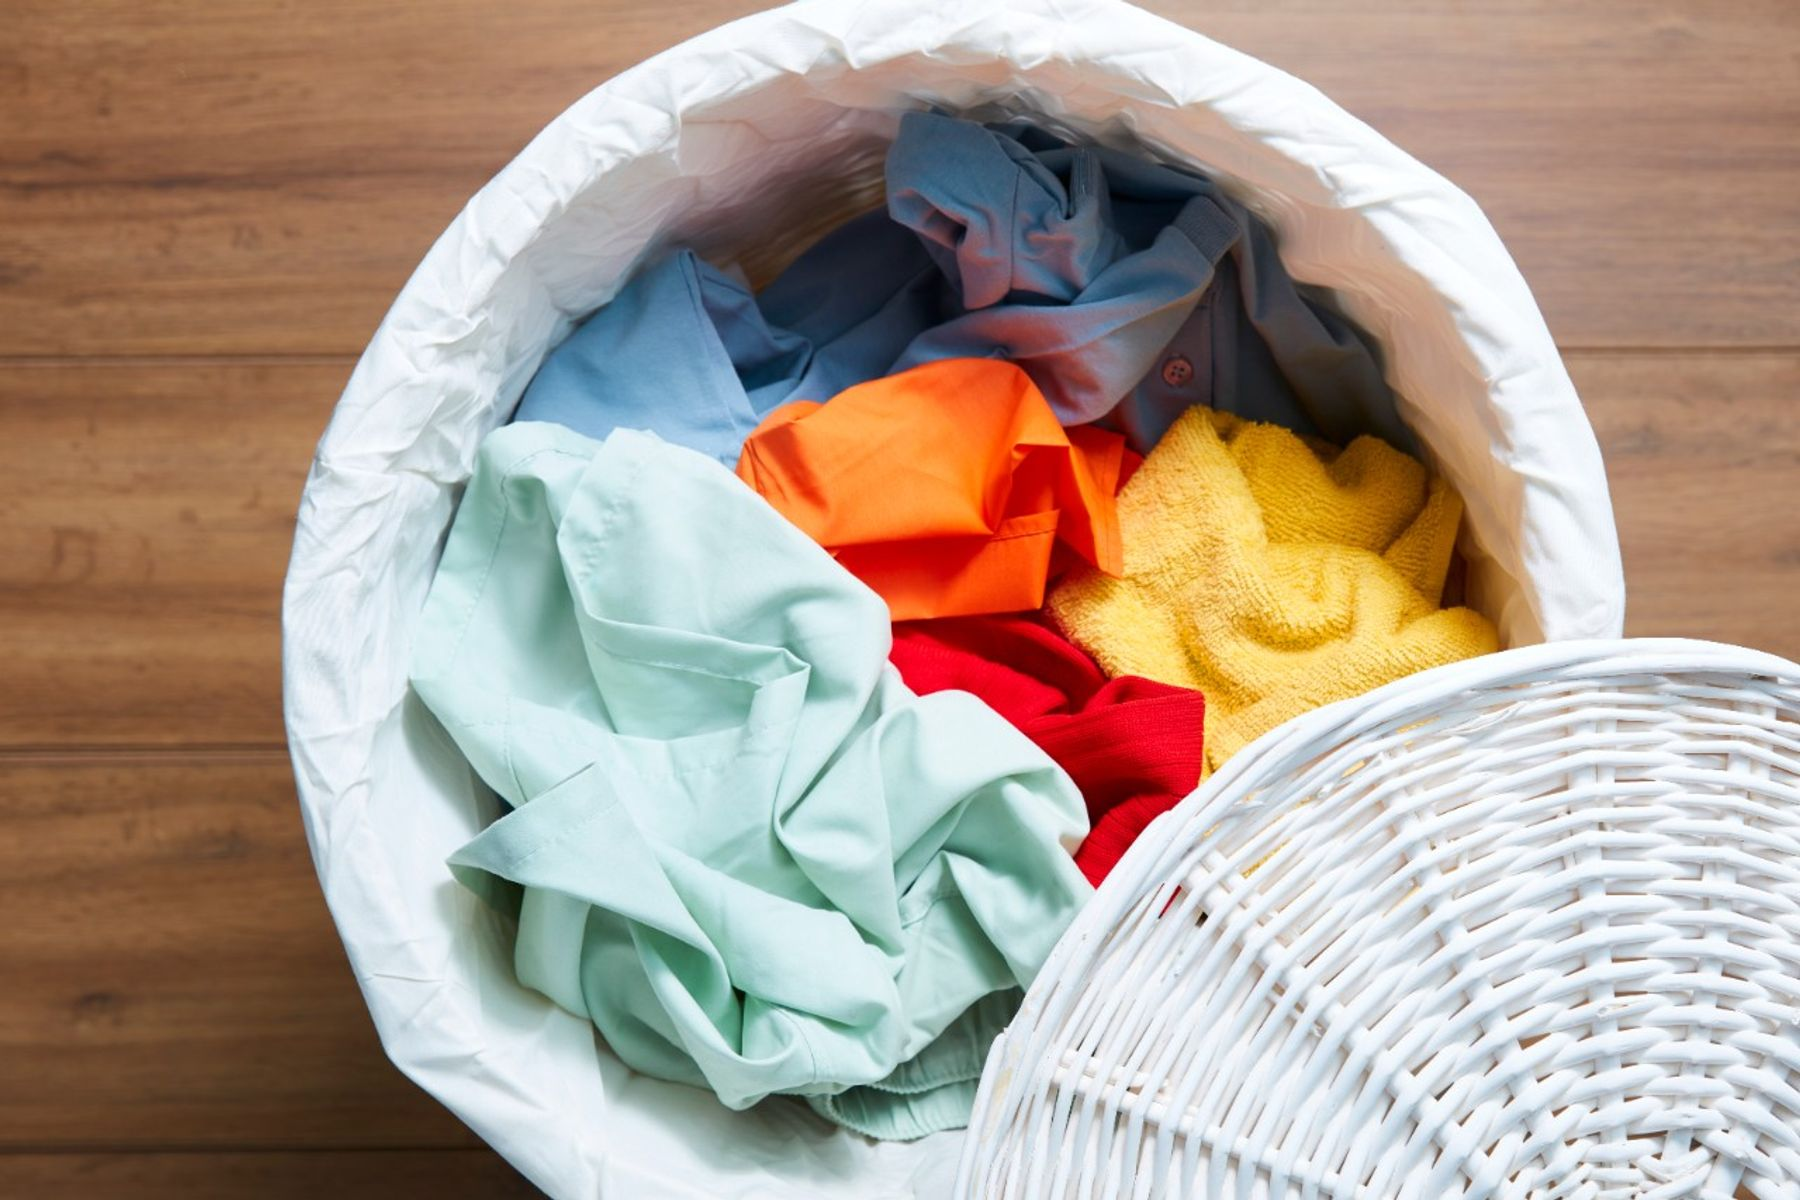 A pile of coloured clothes that smell damp after washing in a white laundry basket